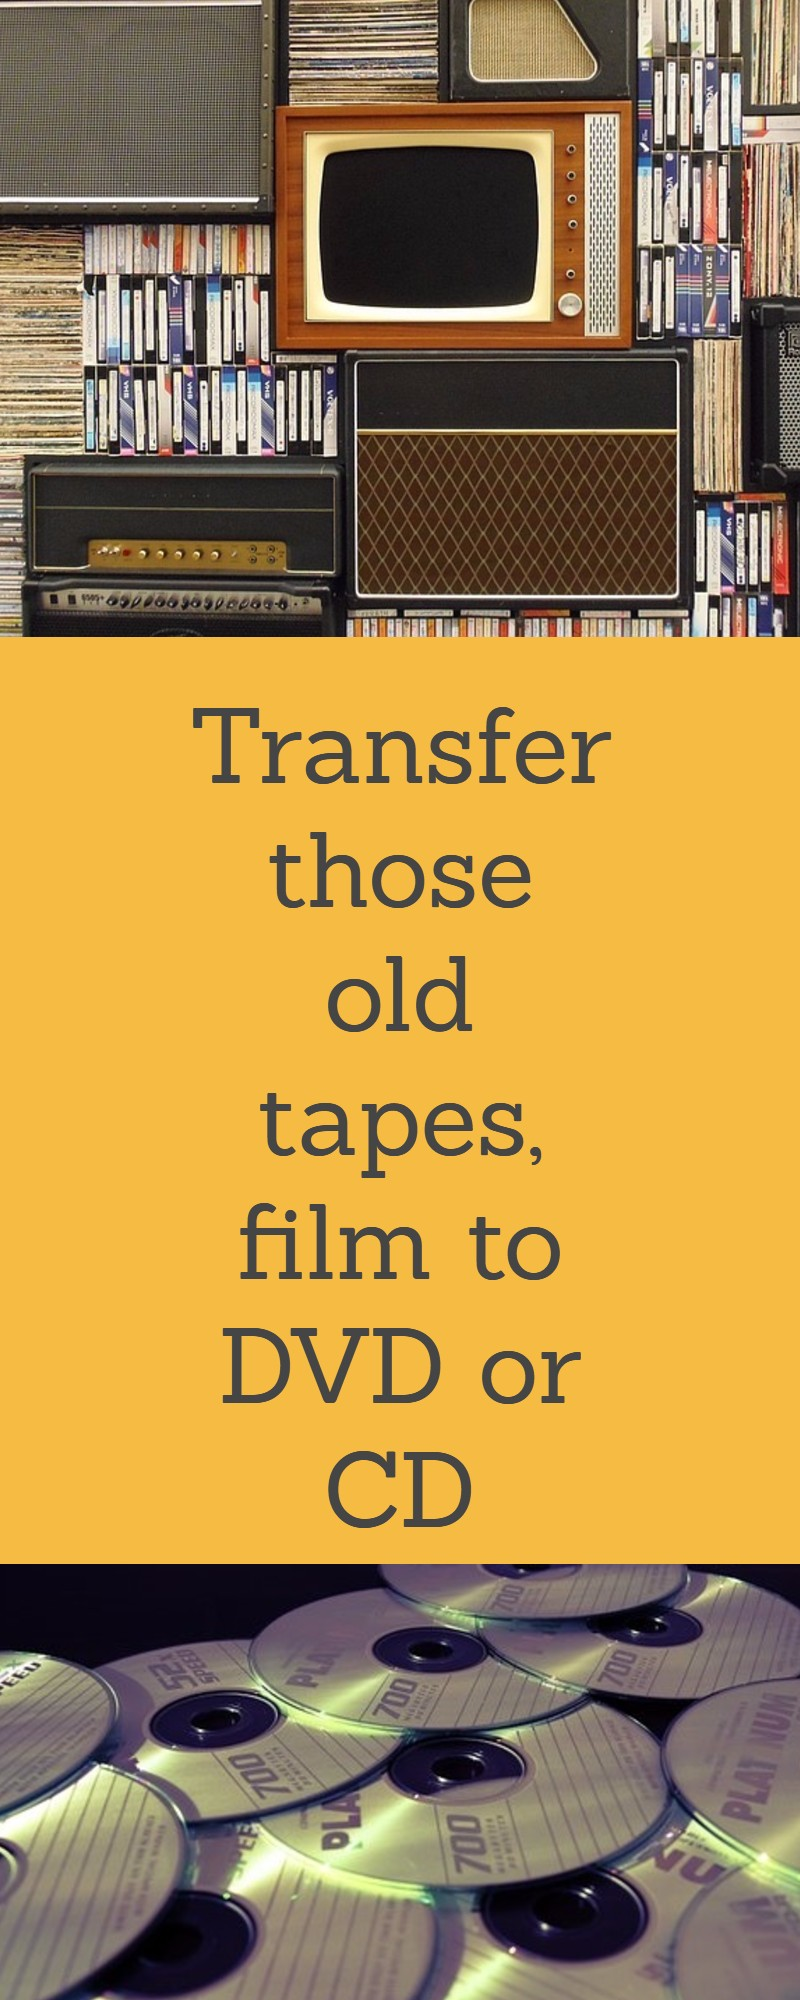 film transfer tips and articles